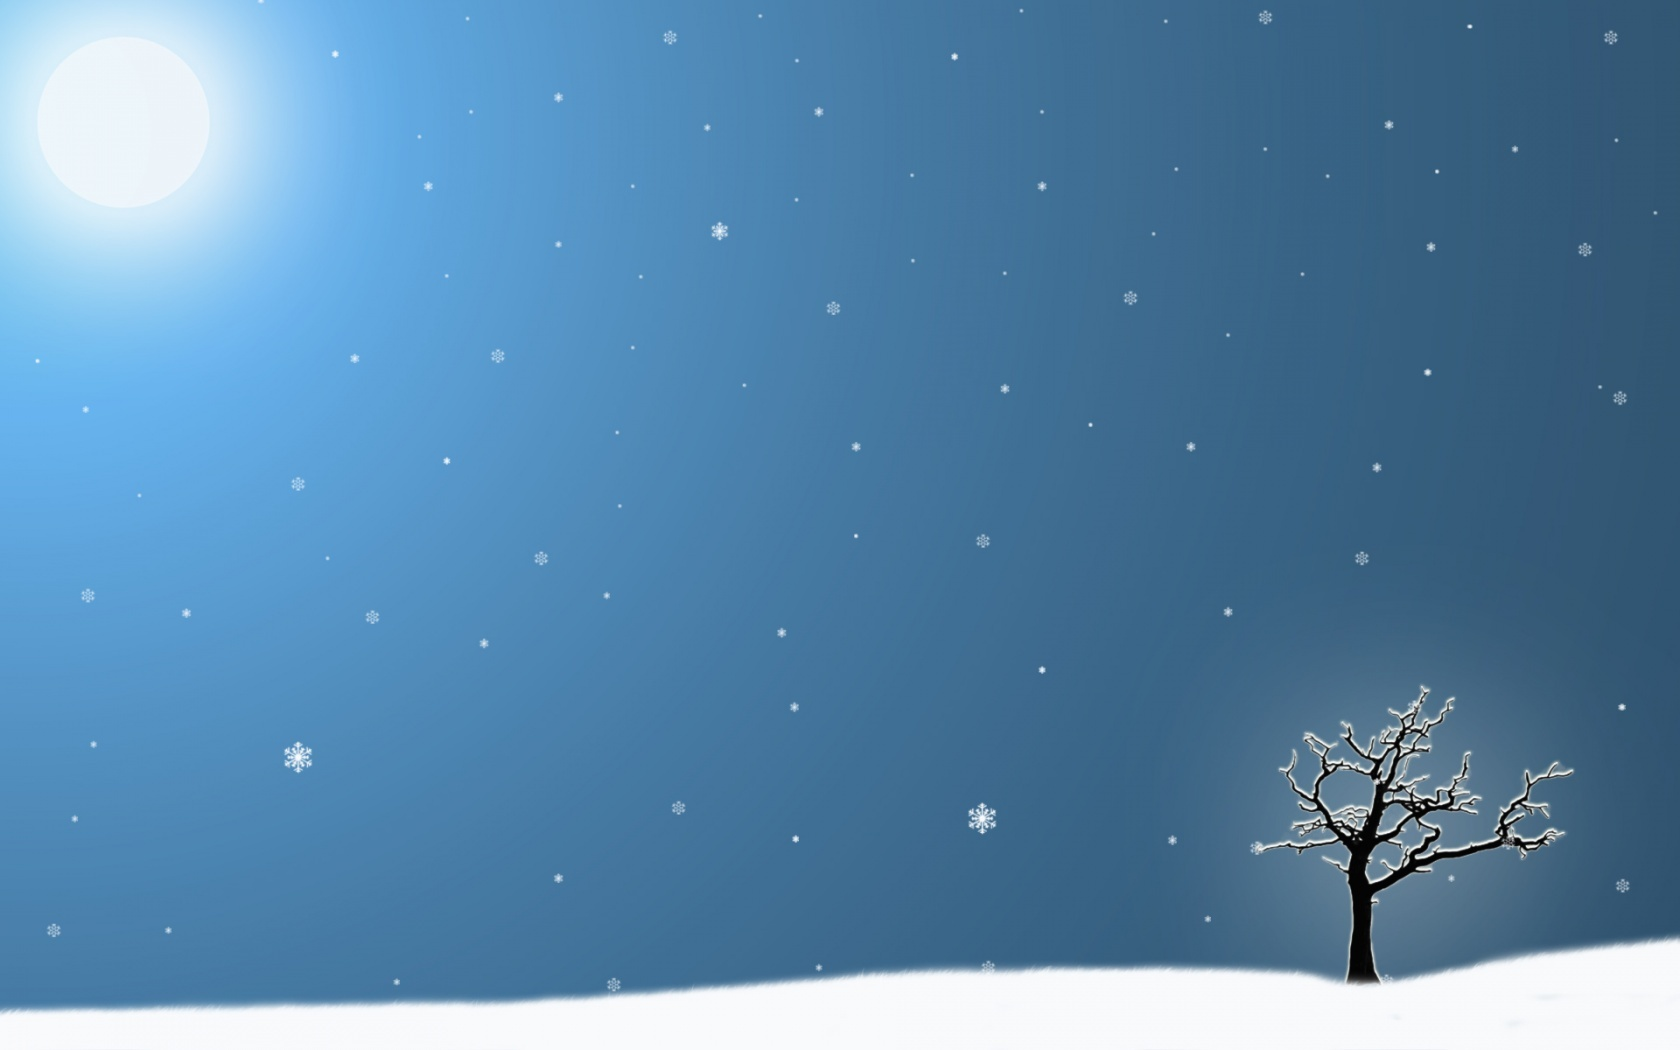 abstract wallpapers hd winter nice